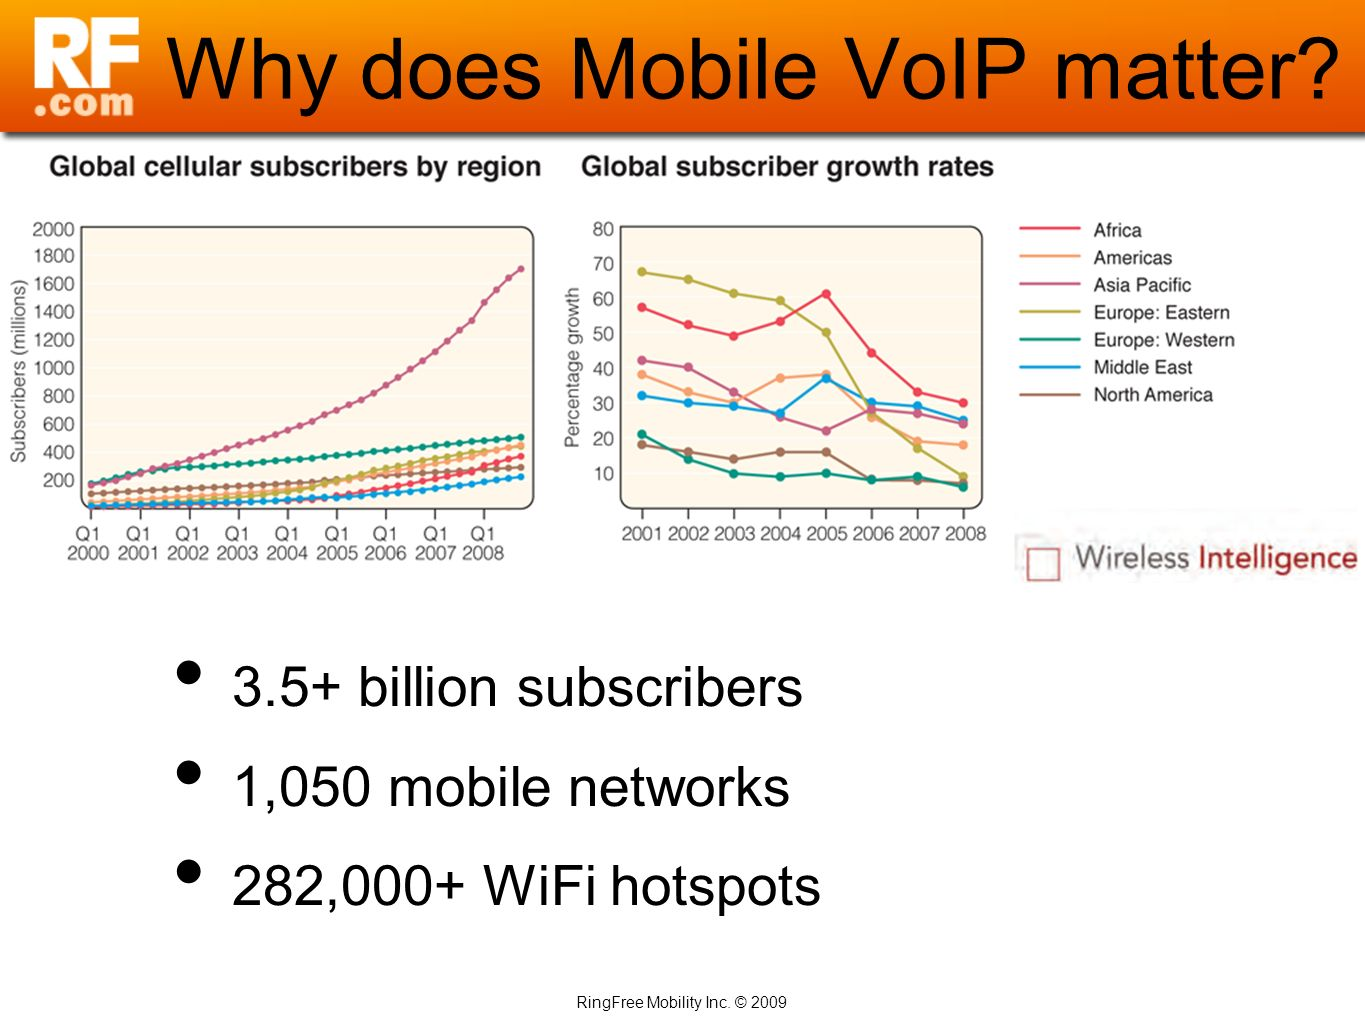 RingFree Mobility Inc. © 2009 Why does Mobile VoIP matter? 3.5+ billion subscribers 1,050 mobile networks 282,000+ WiFi hotspots